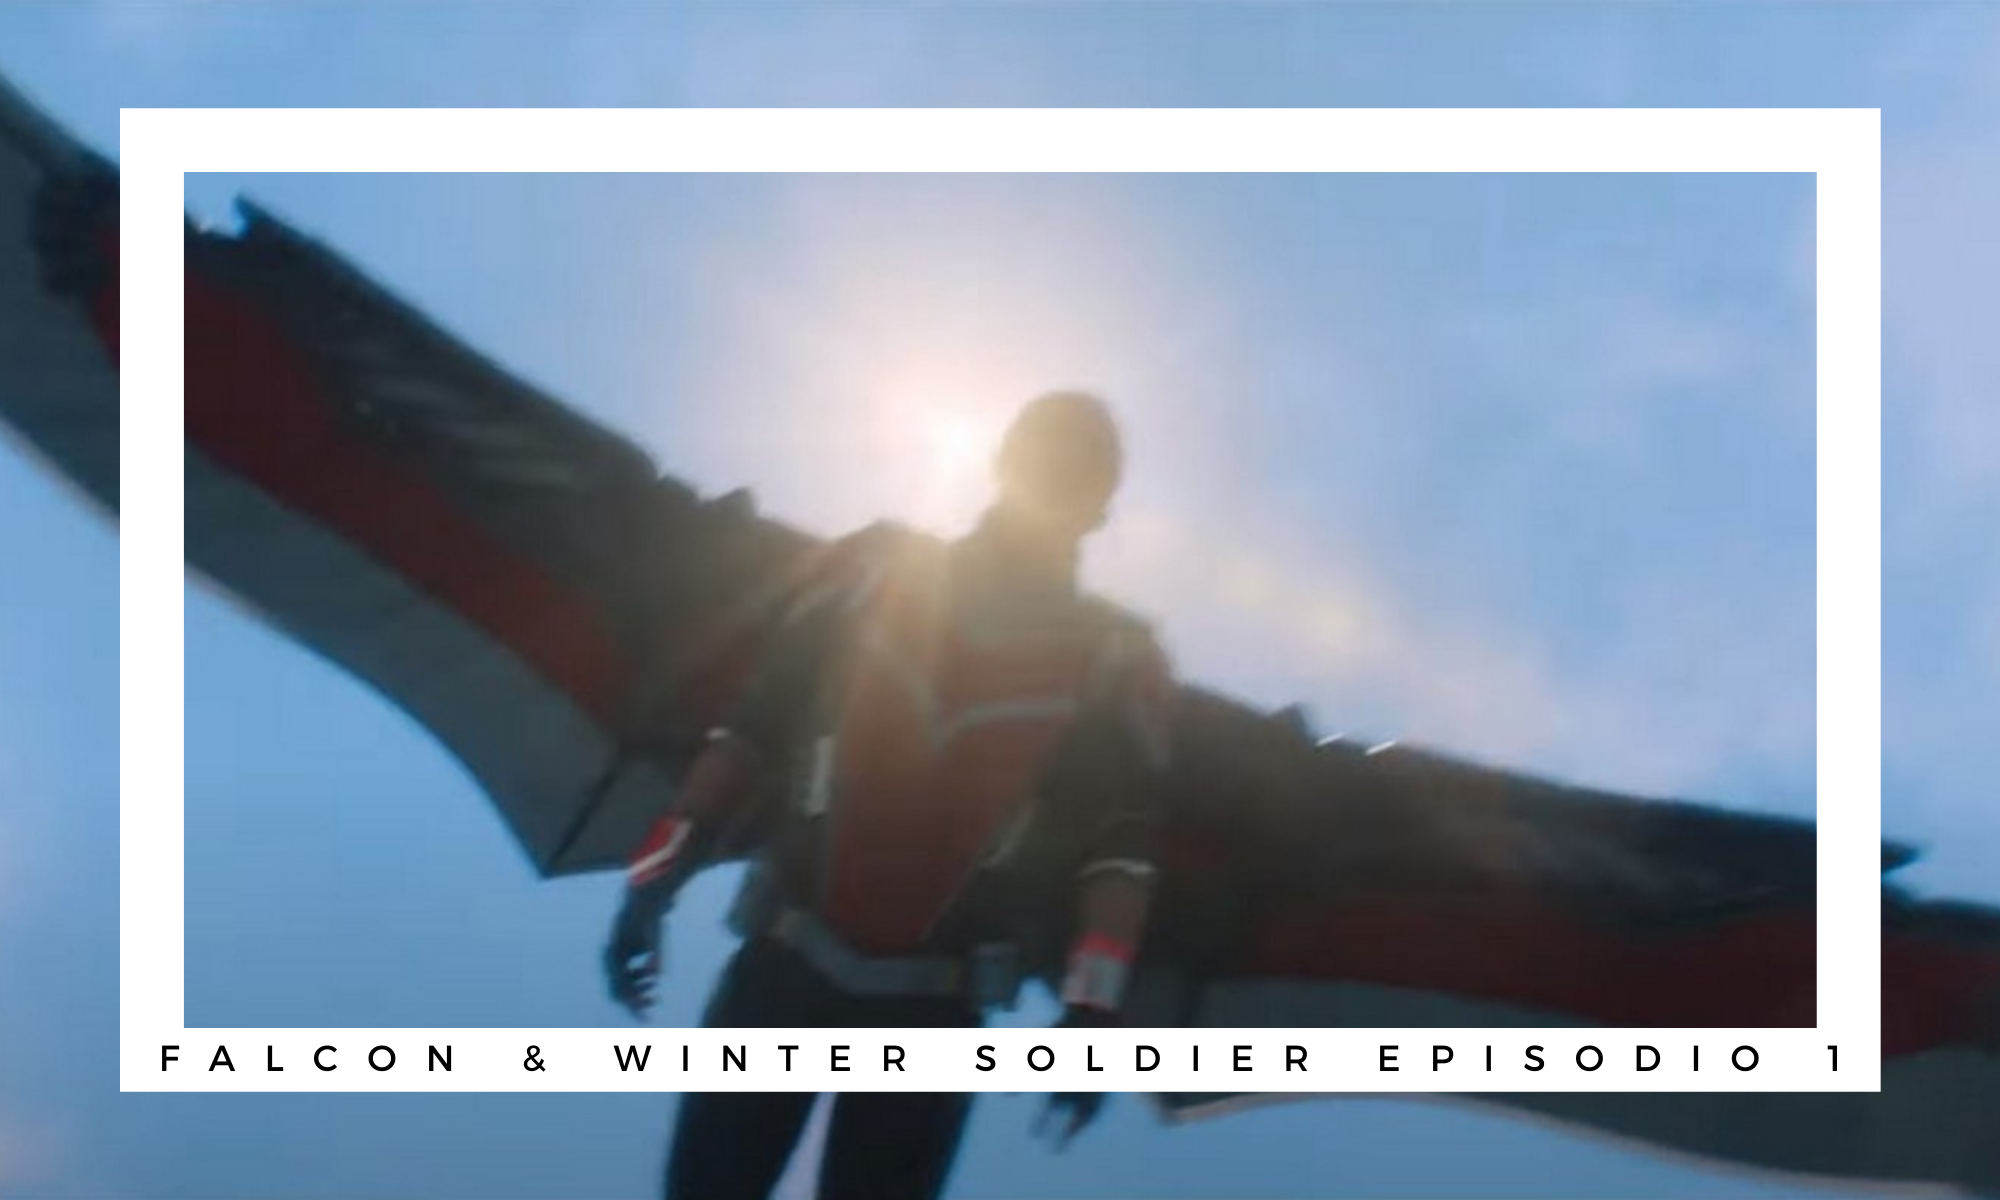 Il primo episodio di The Falcon and the Winter Soldier